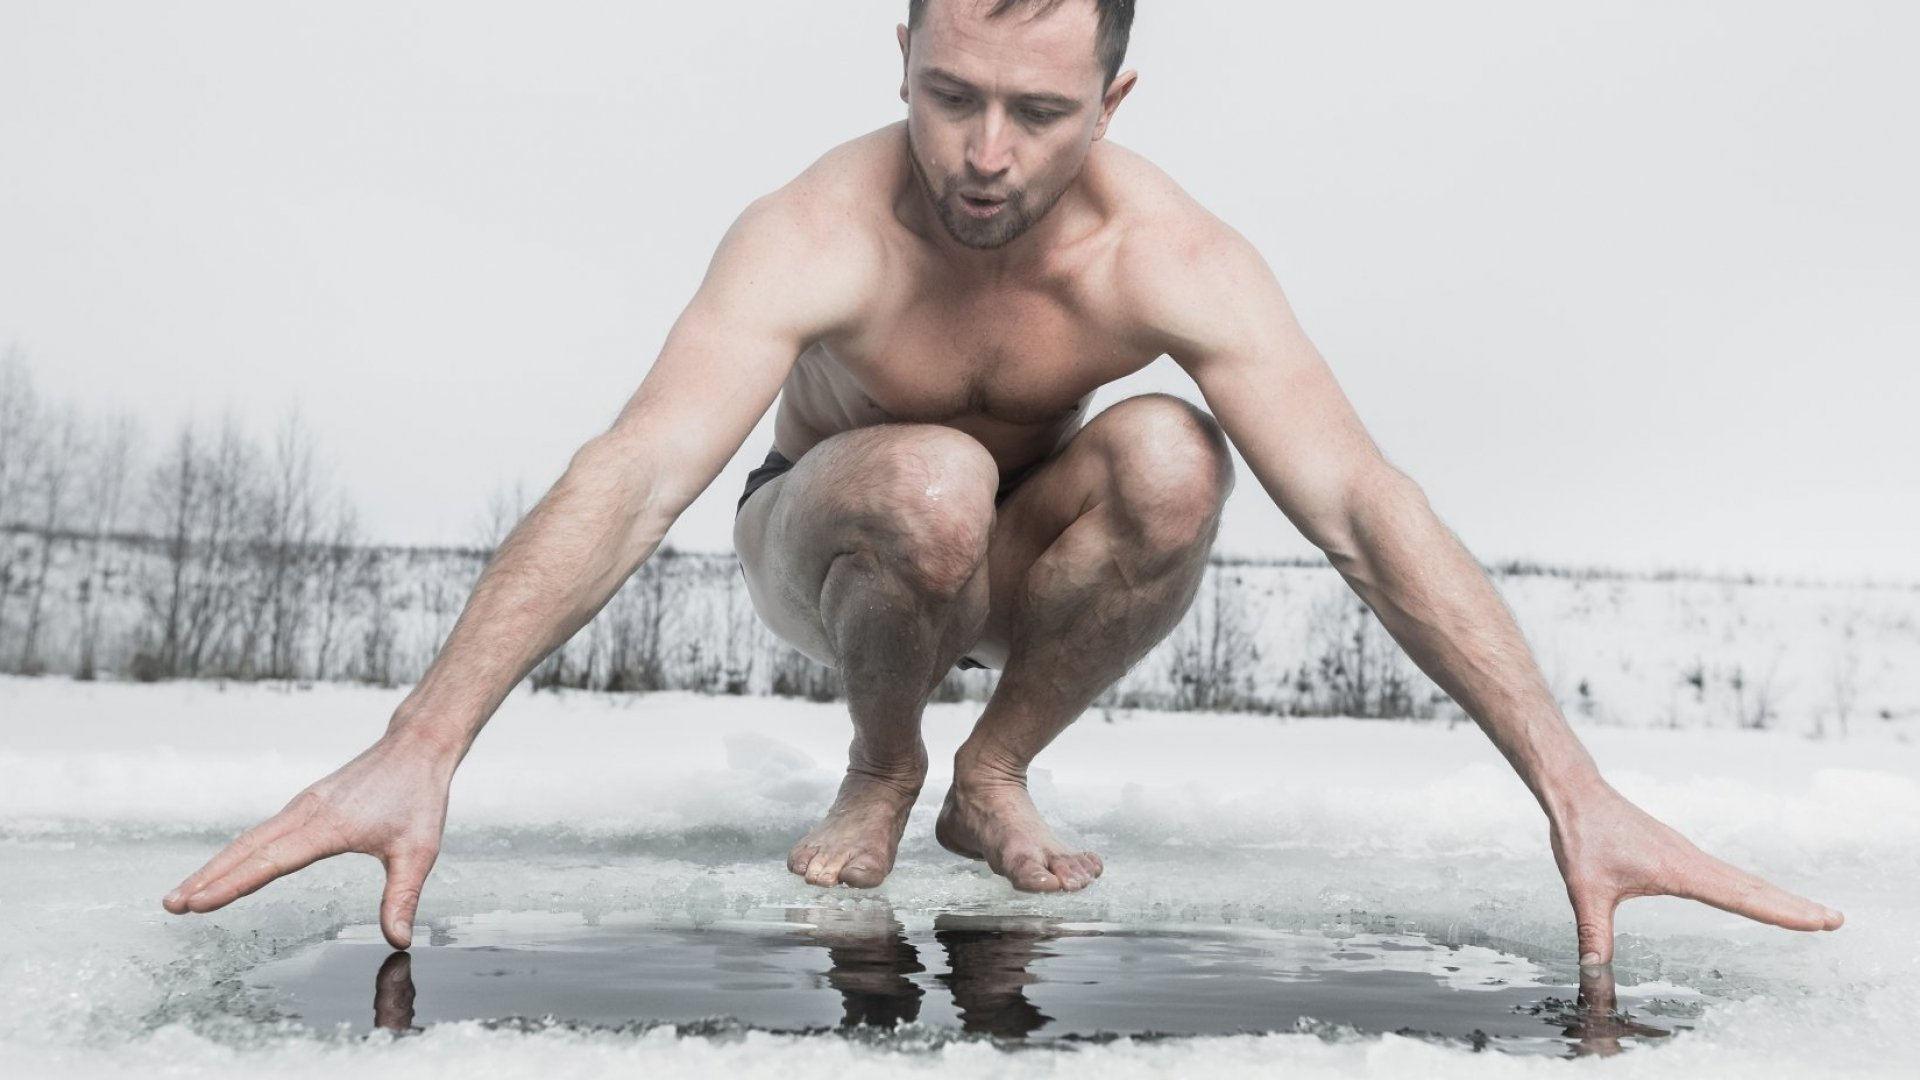 Here's What Happened When I Took Ice Water Baths Every Day for 2 Weeks